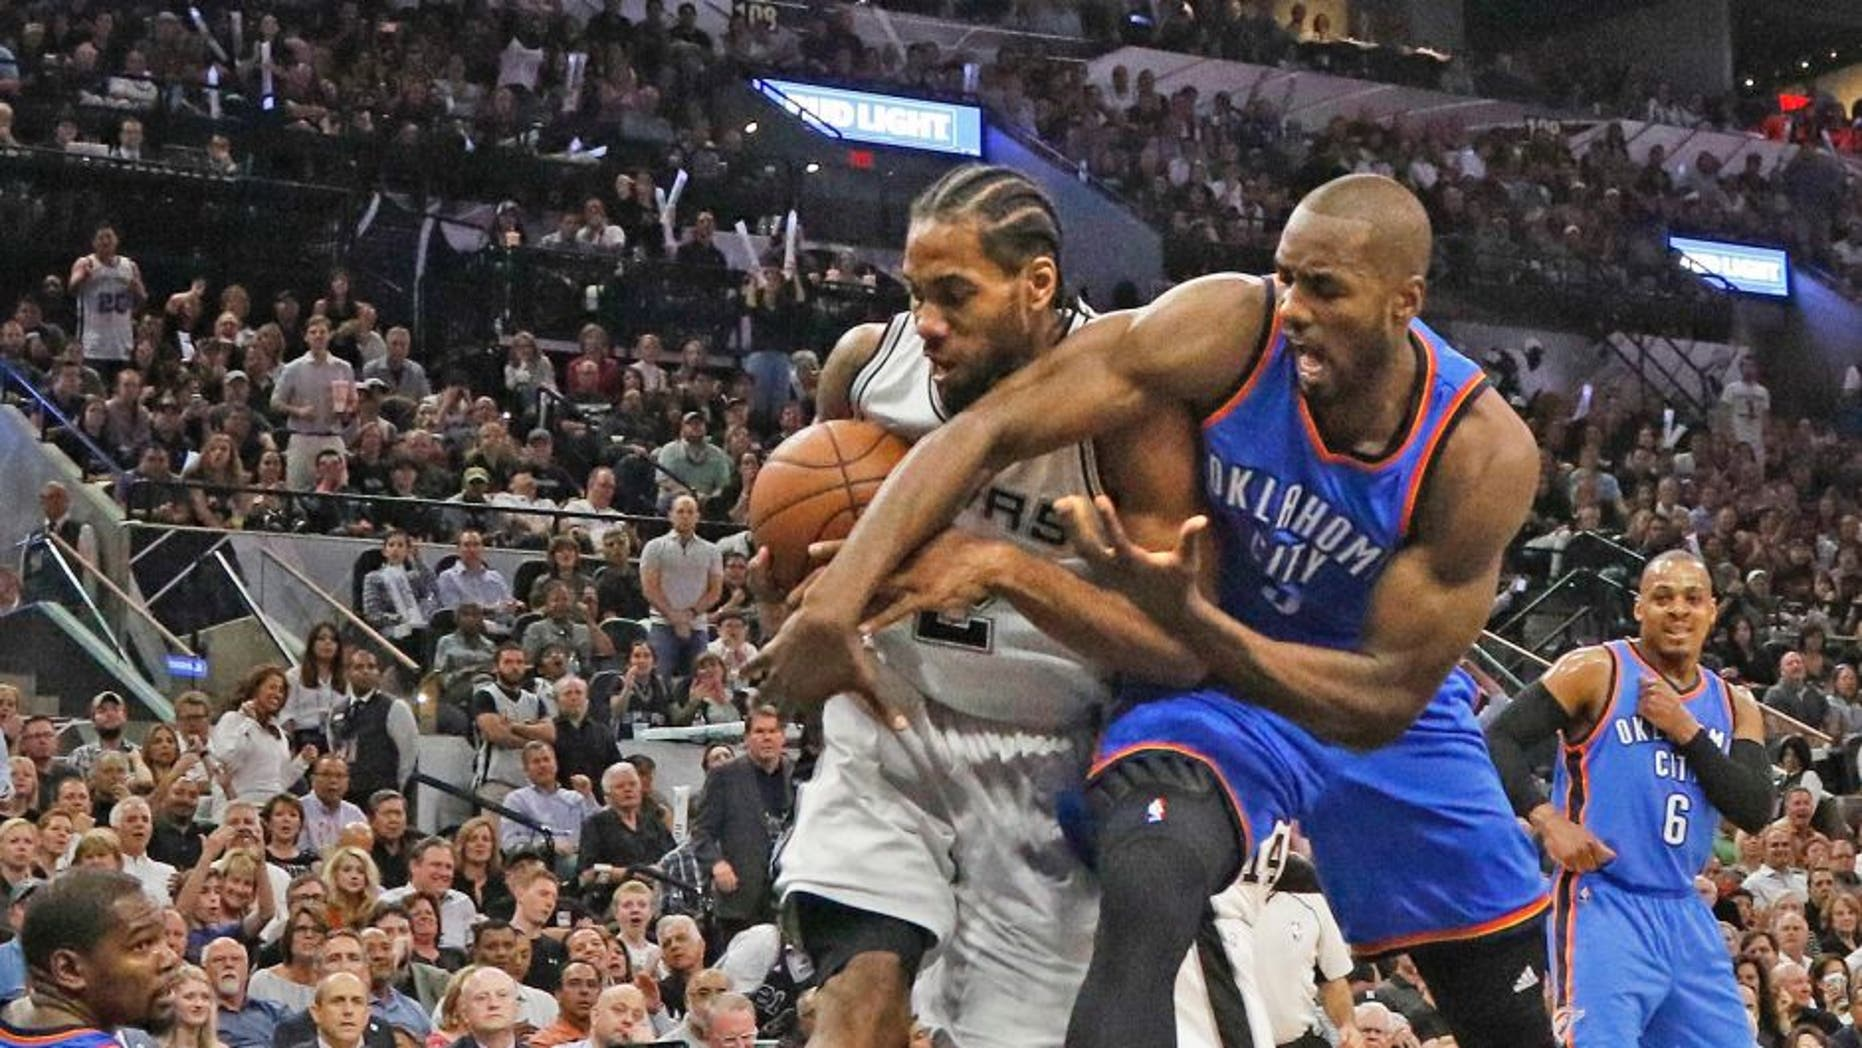 SAN ANTONIO, TX - MAY 10: Kawhi Leonard #2 of the San Antonio Spurs steals the ball away from Serge Ibaka #9 of the Oklahoma City Thunder in game Five of the Western Conference Semifinals during the 2016 NBA Playoffs at AT&T Center on May 10, 2016 in San Antonio, Texas. NOTE TO USER: User expressly acknowledges and agrees that , by downloading and or using this photograph, User is consenting to the terms and conditions of the Getty Images License Agreement. (Photo by Ronald Cortes/Getty Images)